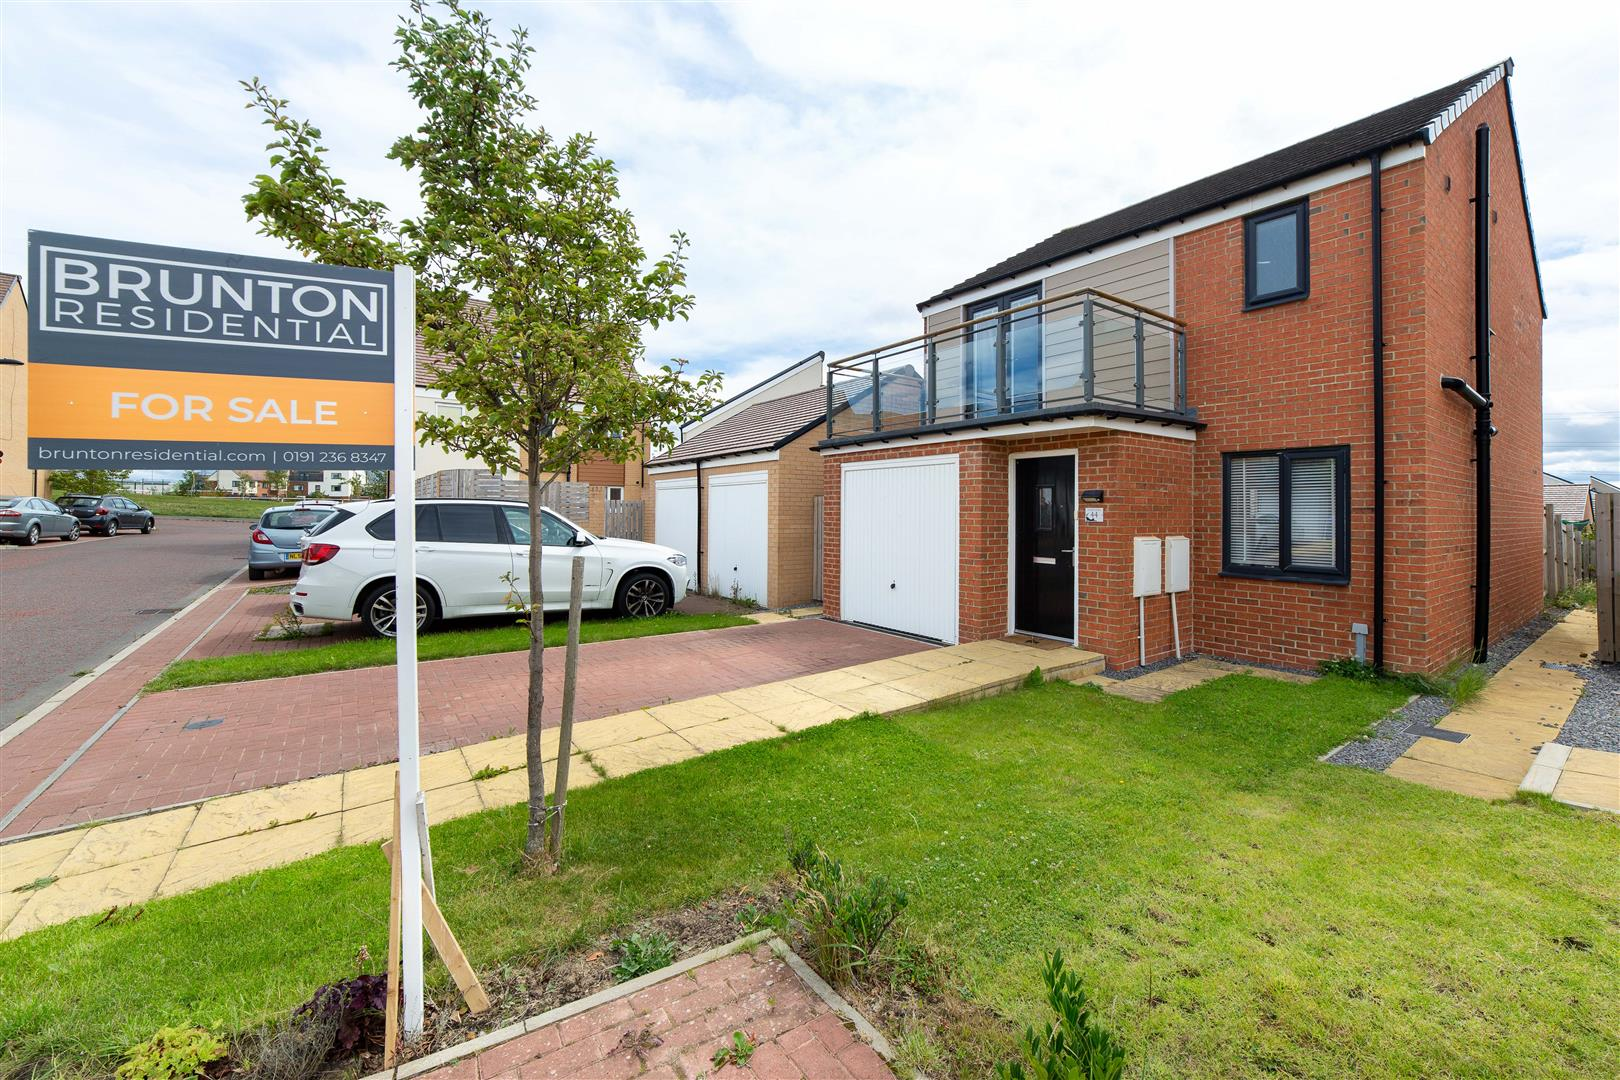 3 bed detached house for sale in Newcastle Upon Tyne, NE13 9DN - Property Image 1